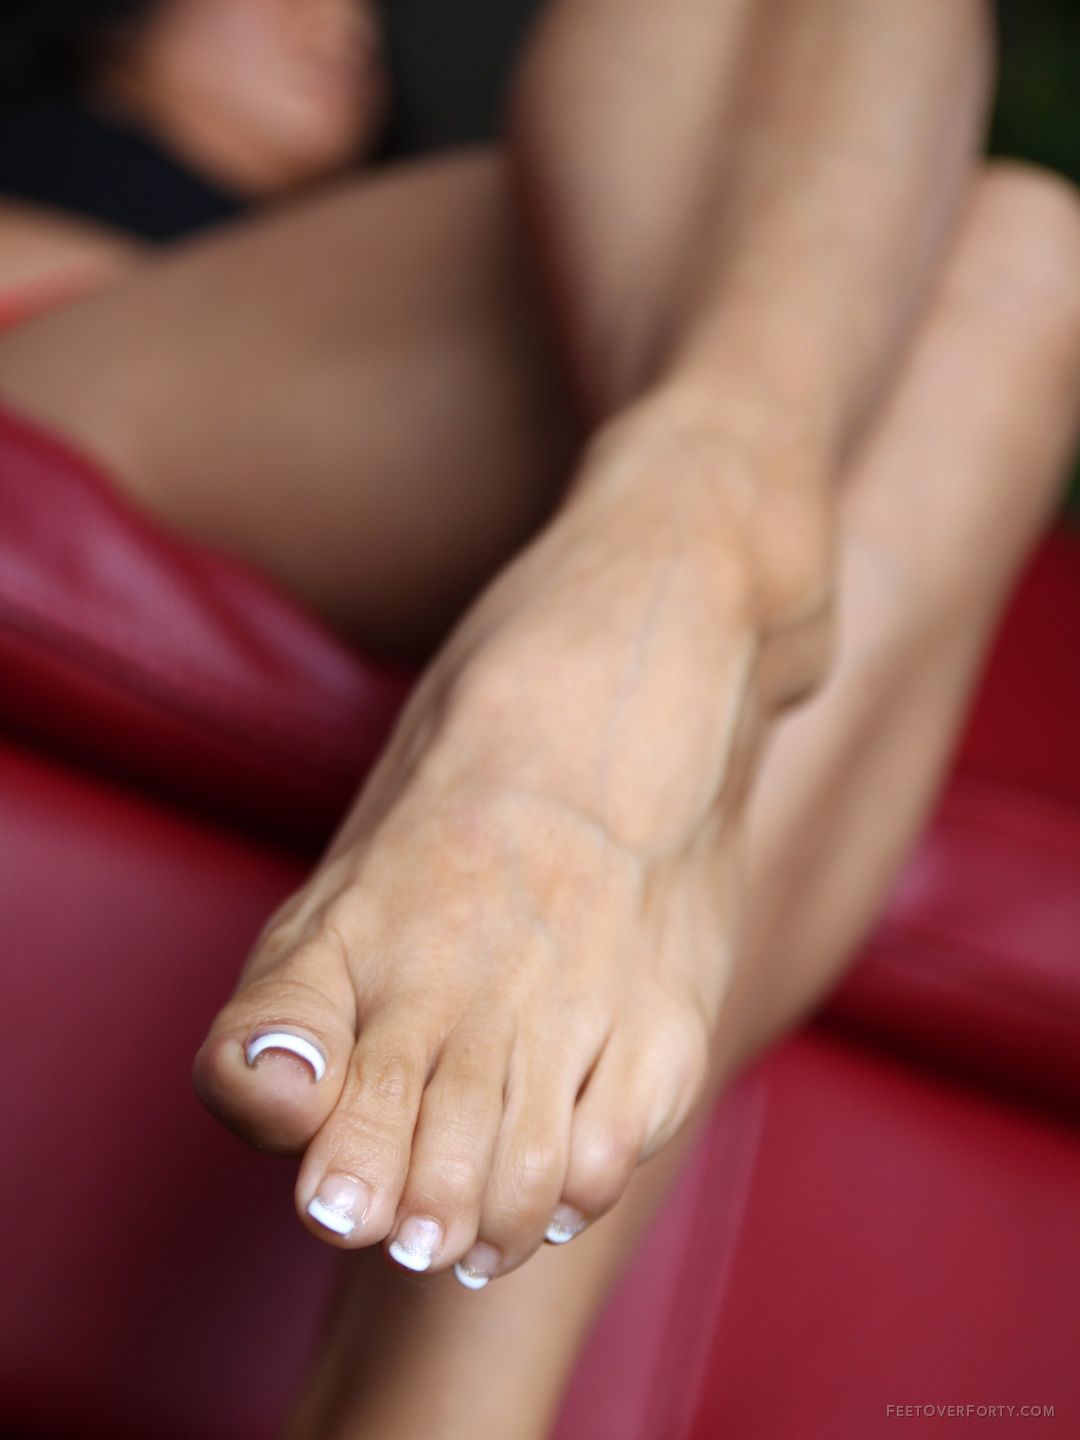 Feetoverfortycom A Foot Fetish Gallery Of Mature Feet -9968